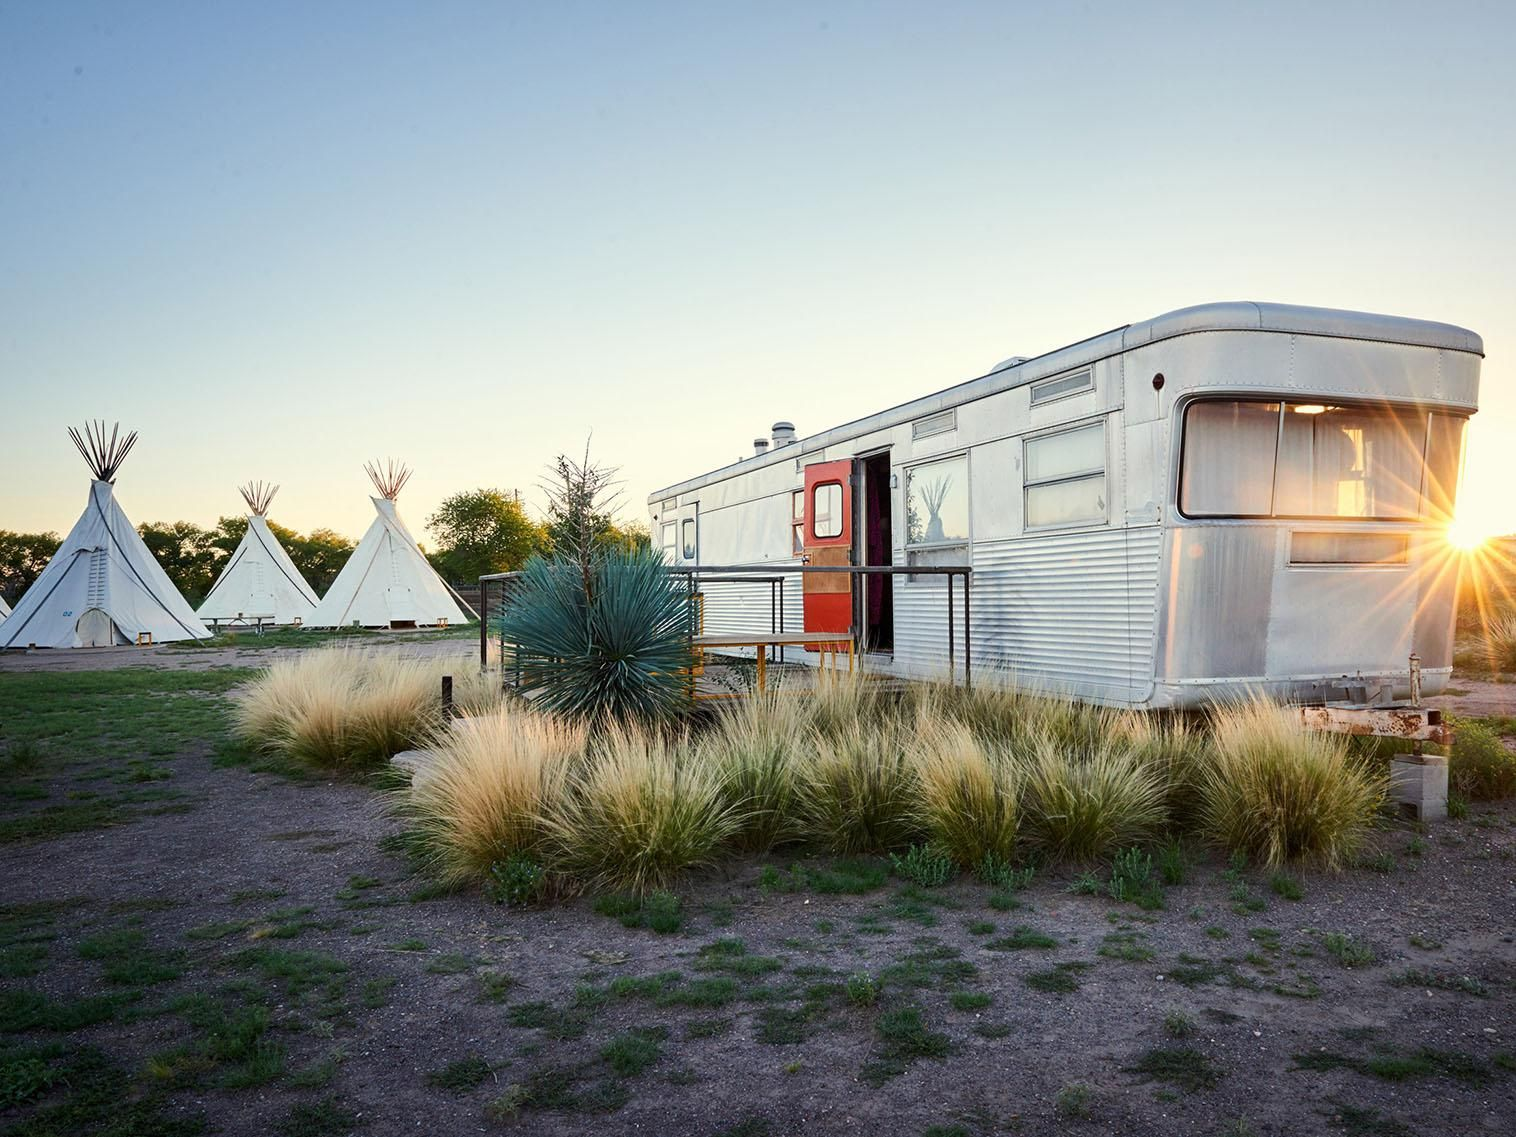 23 Reasons Marfa, Texas is the Hidden Gem of the South